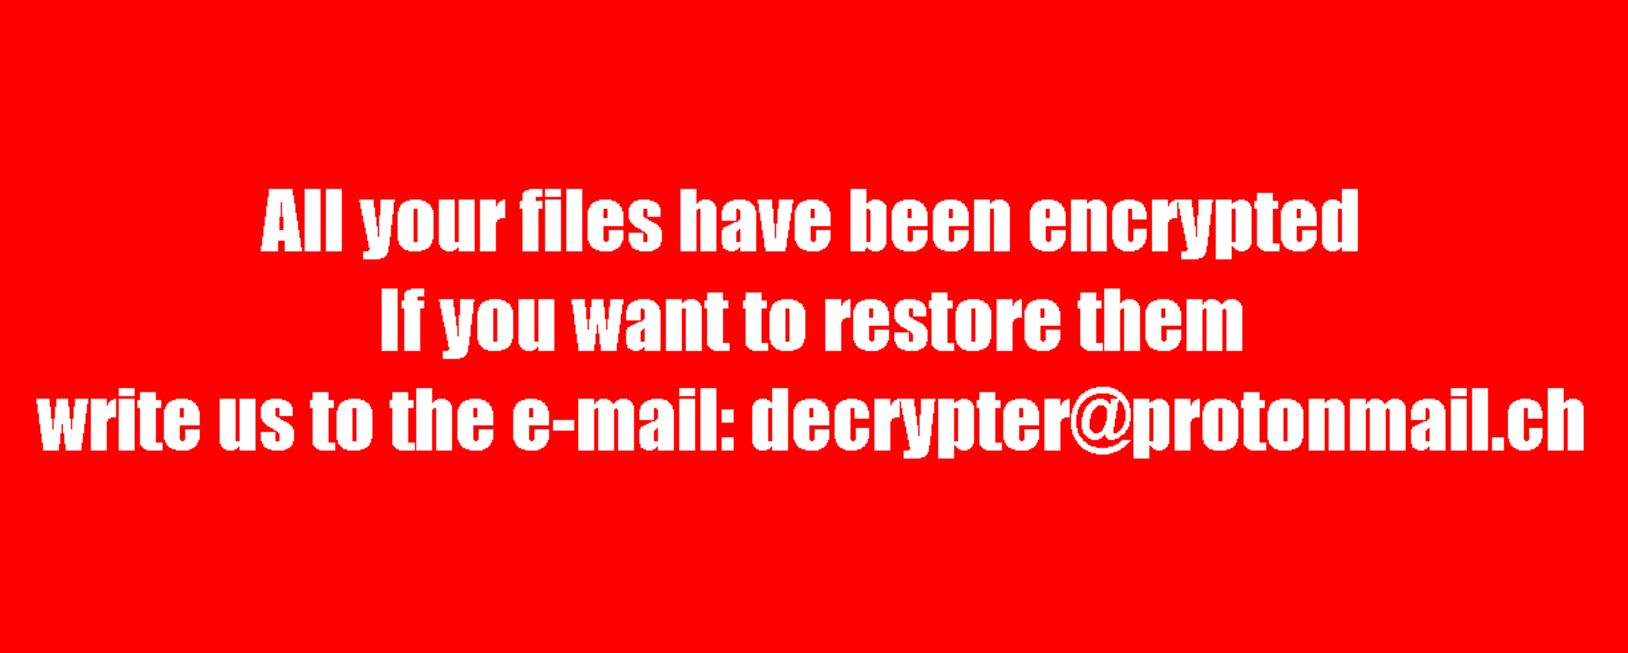 BTCWare Ransomware Files Encrypted